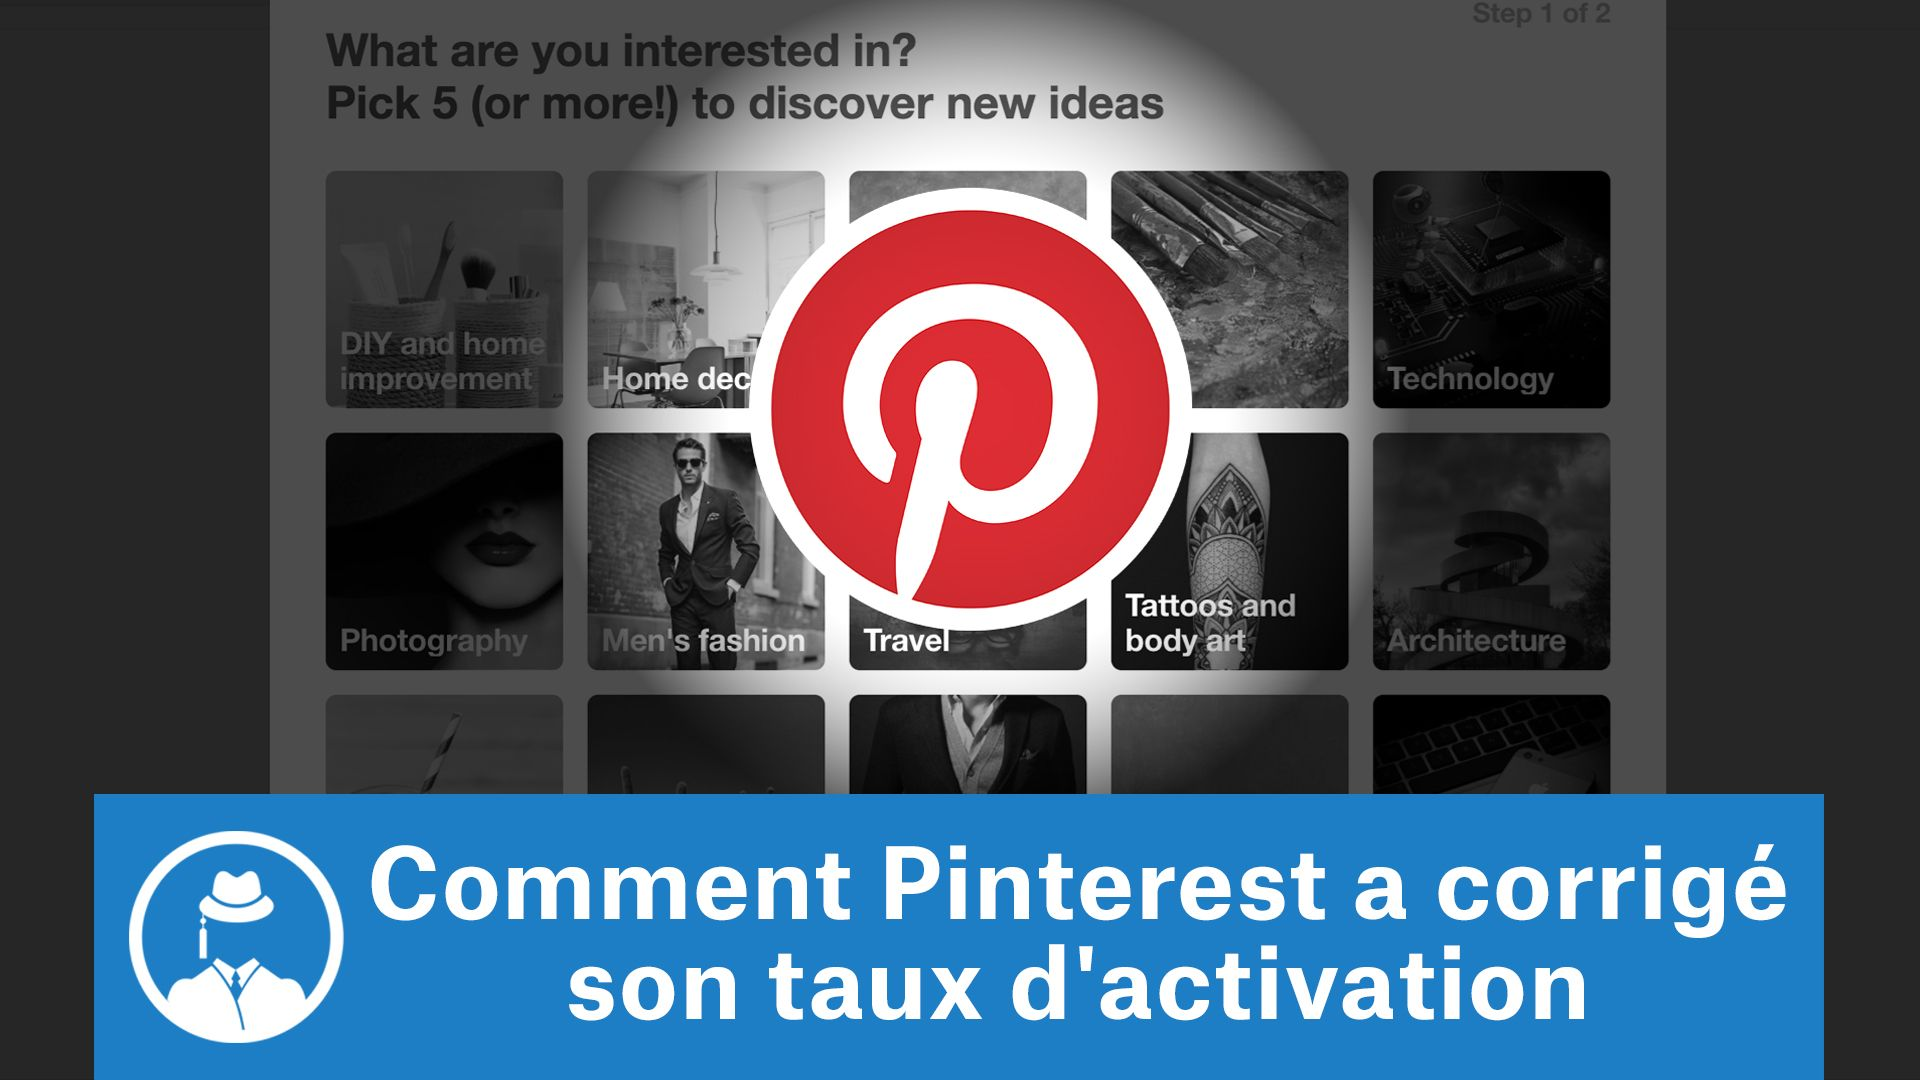 Comment Pinterest a corrigé son taux d'activation #GrowthHacking #WebMarketing #FormationGrowthHacking #CentreDeFormationFrance #TunnelAARRR #AARRR #SocialMedia #CommunityManagement #SEO #MarketingDigital #SiteWeb #Pinterest